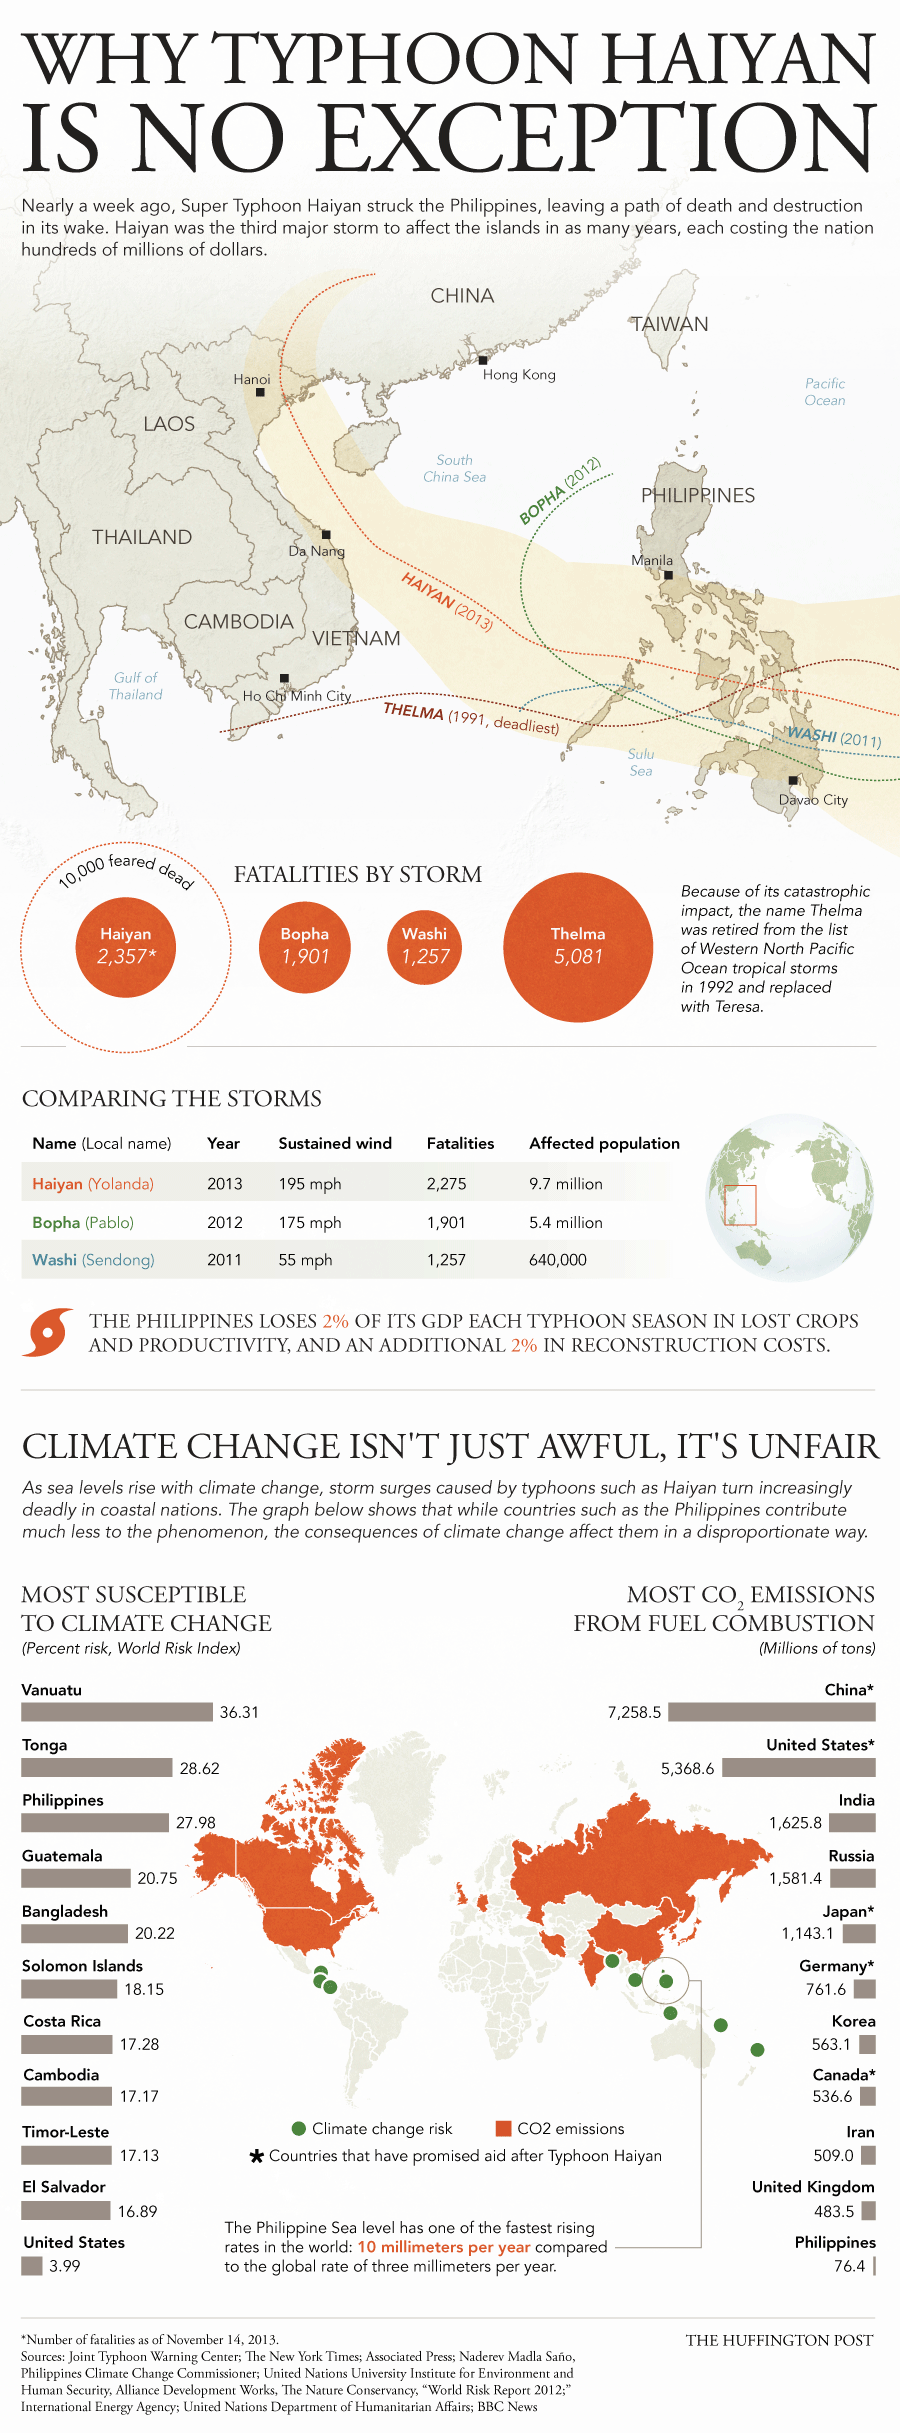 Typhoon Haiyan Infographic